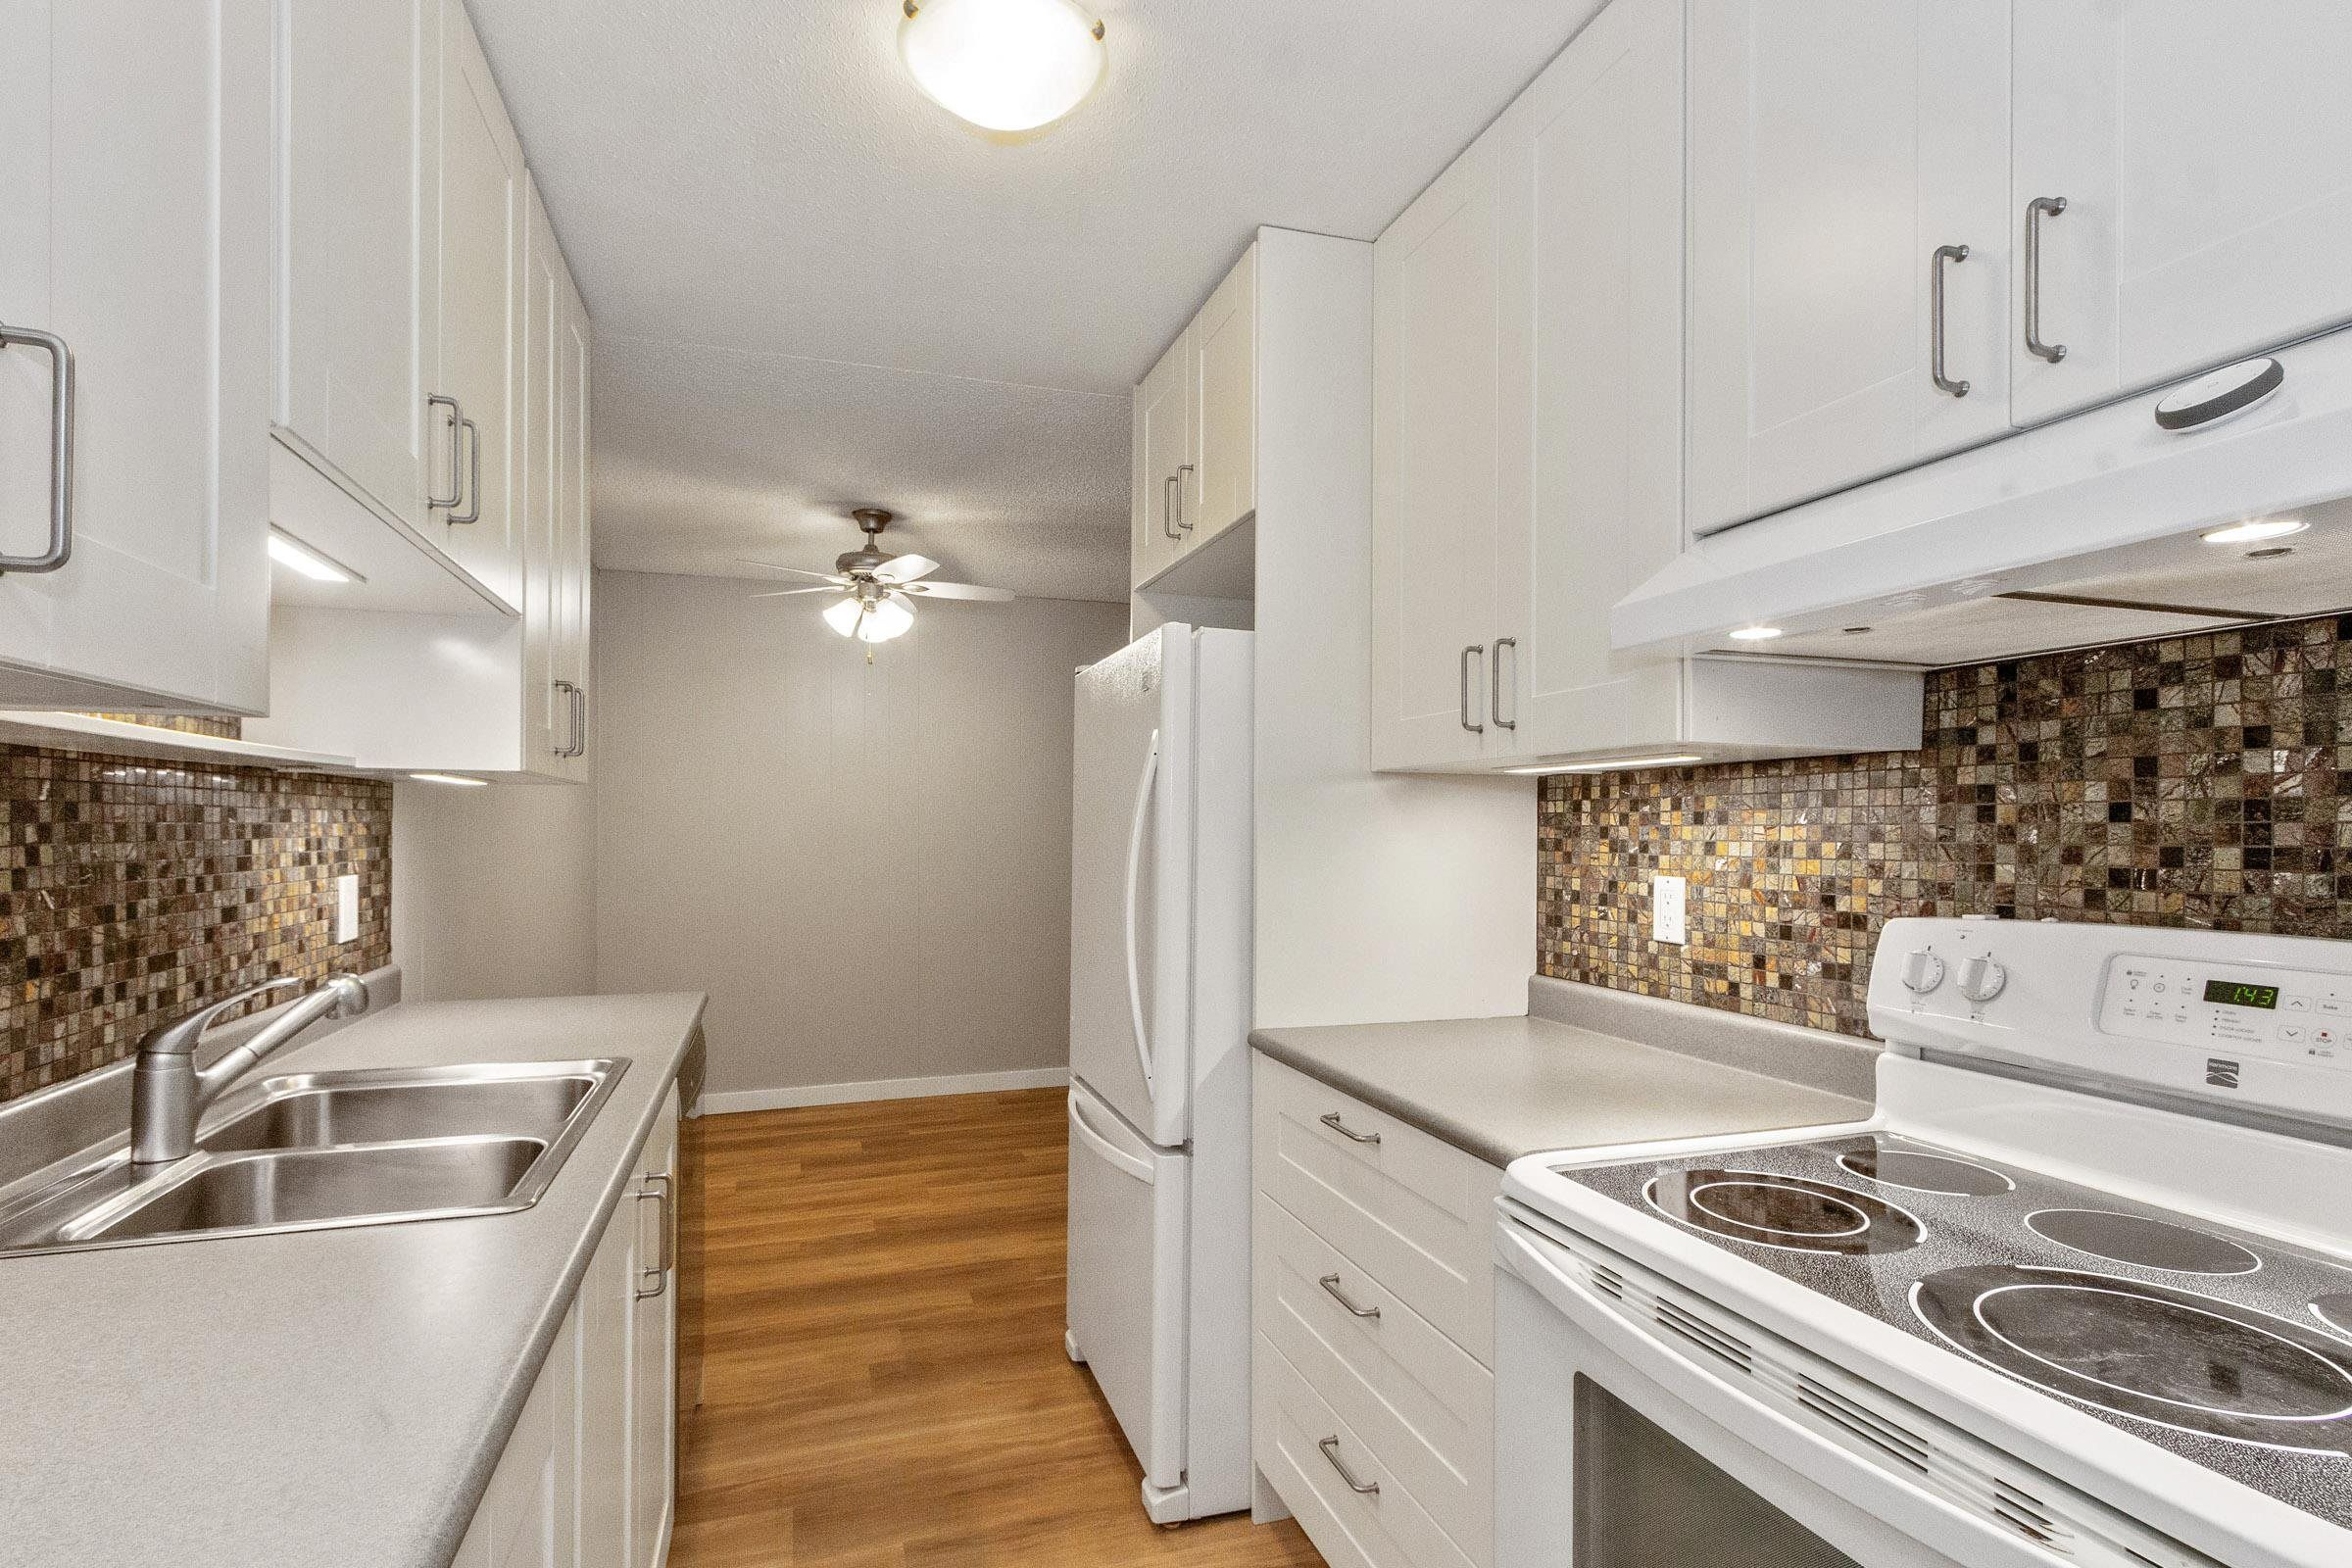 """Main Photo: 115 3921 CARRIGAN Court in Burnaby: Government Road Condo for sale in """"LOUGHEED ESTATES"""" (Burnaby North)  : MLS®# R2610638"""